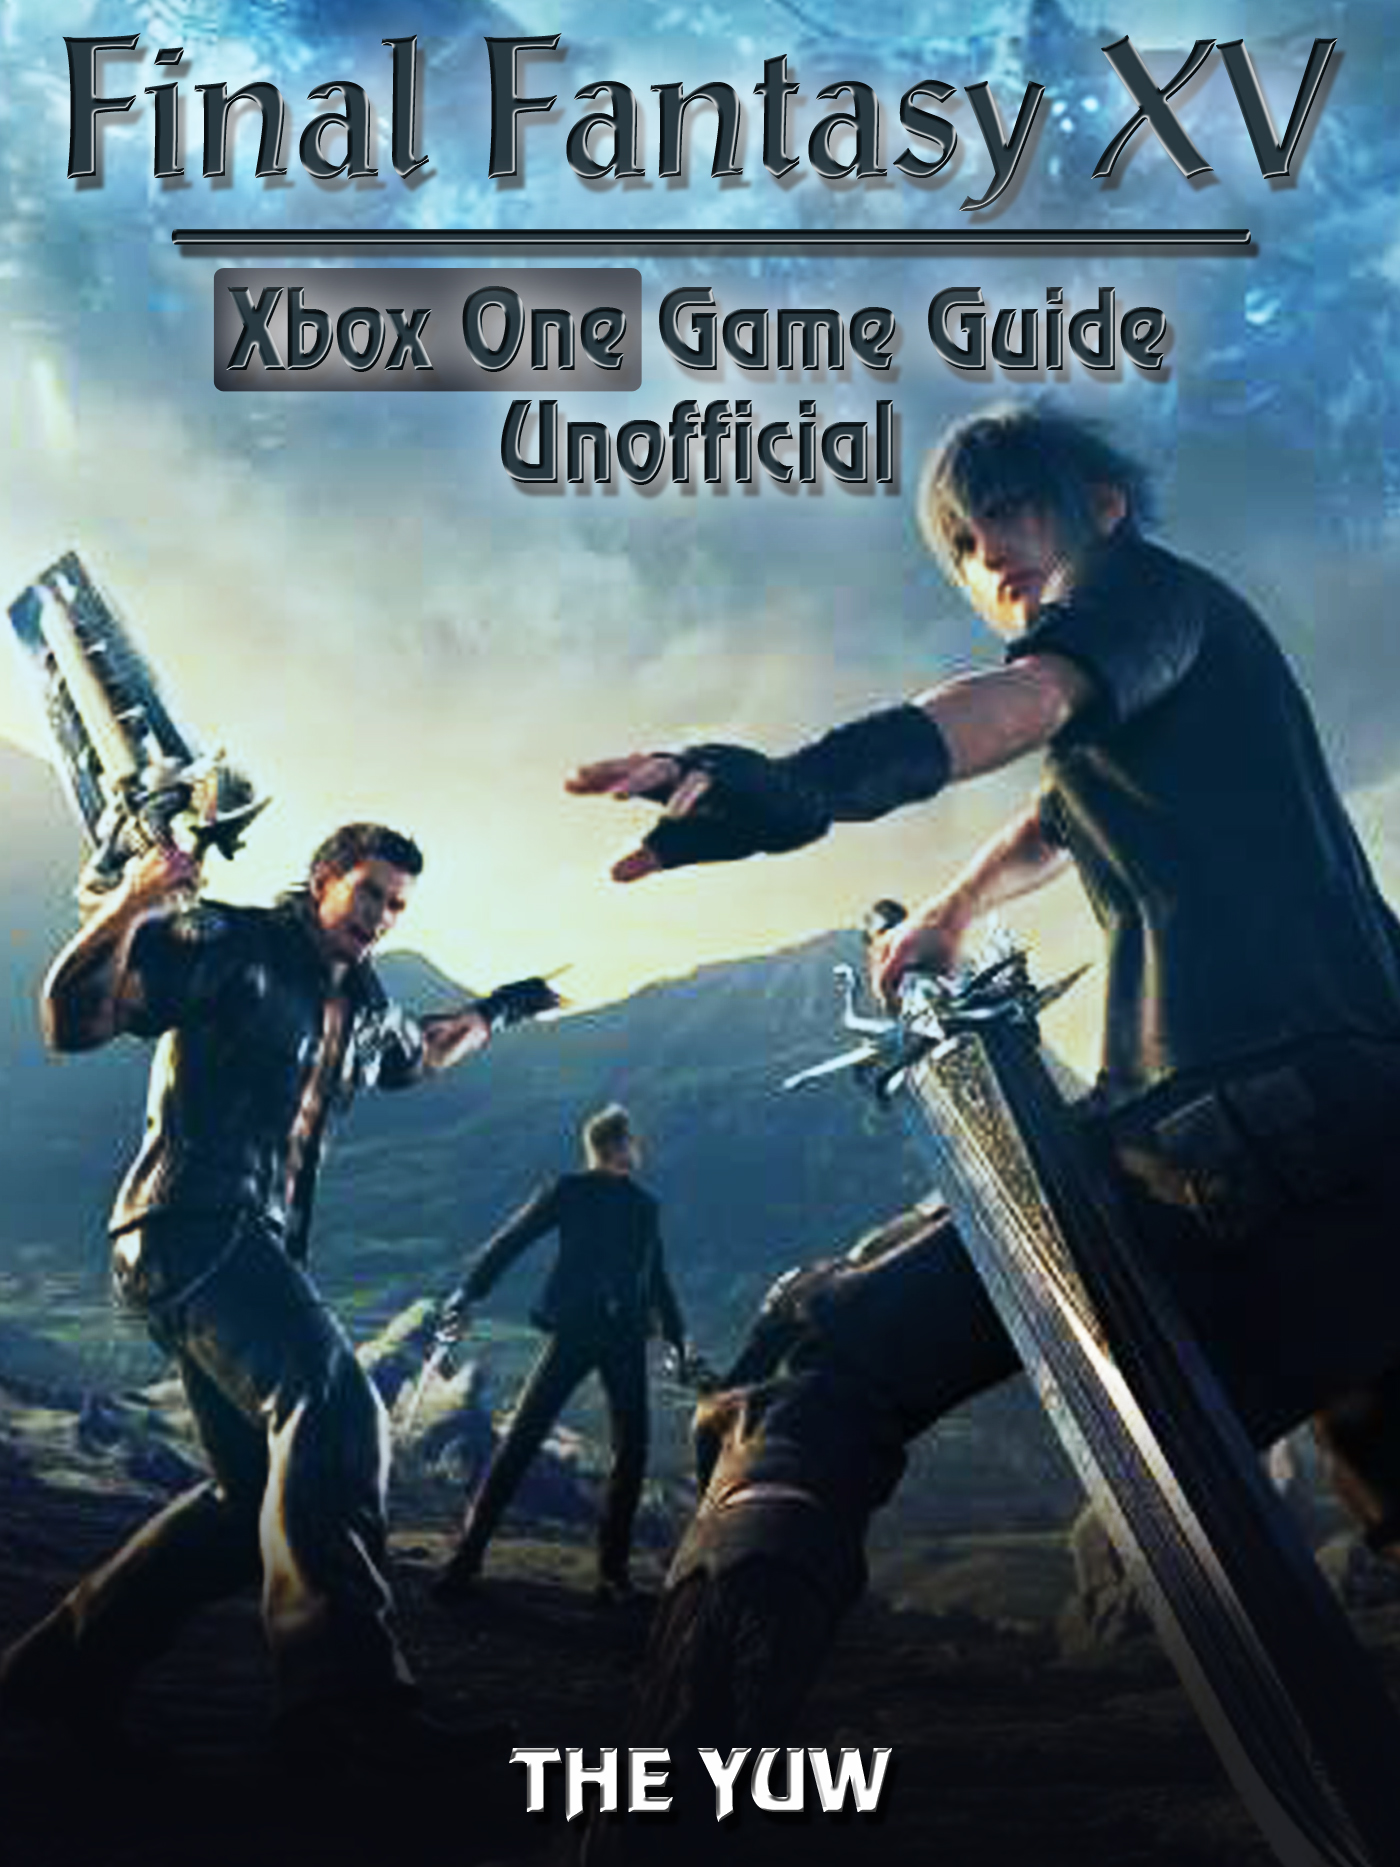 Final Fantasy XV Xbox One Game Guide Unofficial By The Yuw